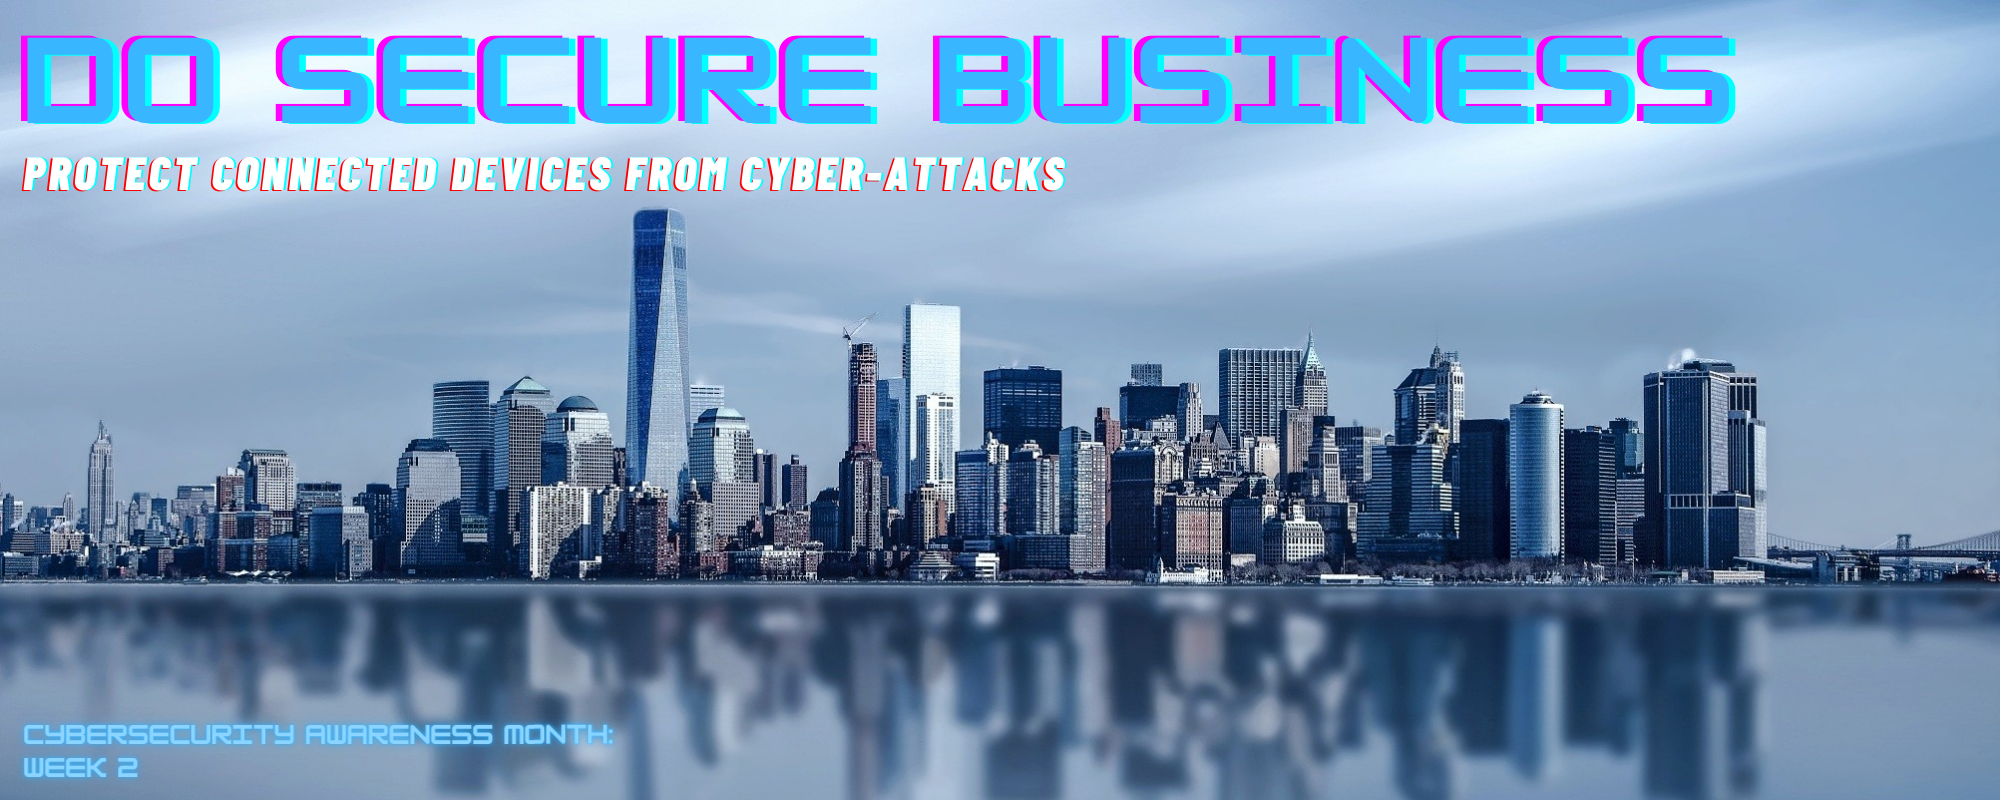 """Image of a city skyline with the caption, """"Do Secure Business. Protect connected devices from cyber-attacks."""""""